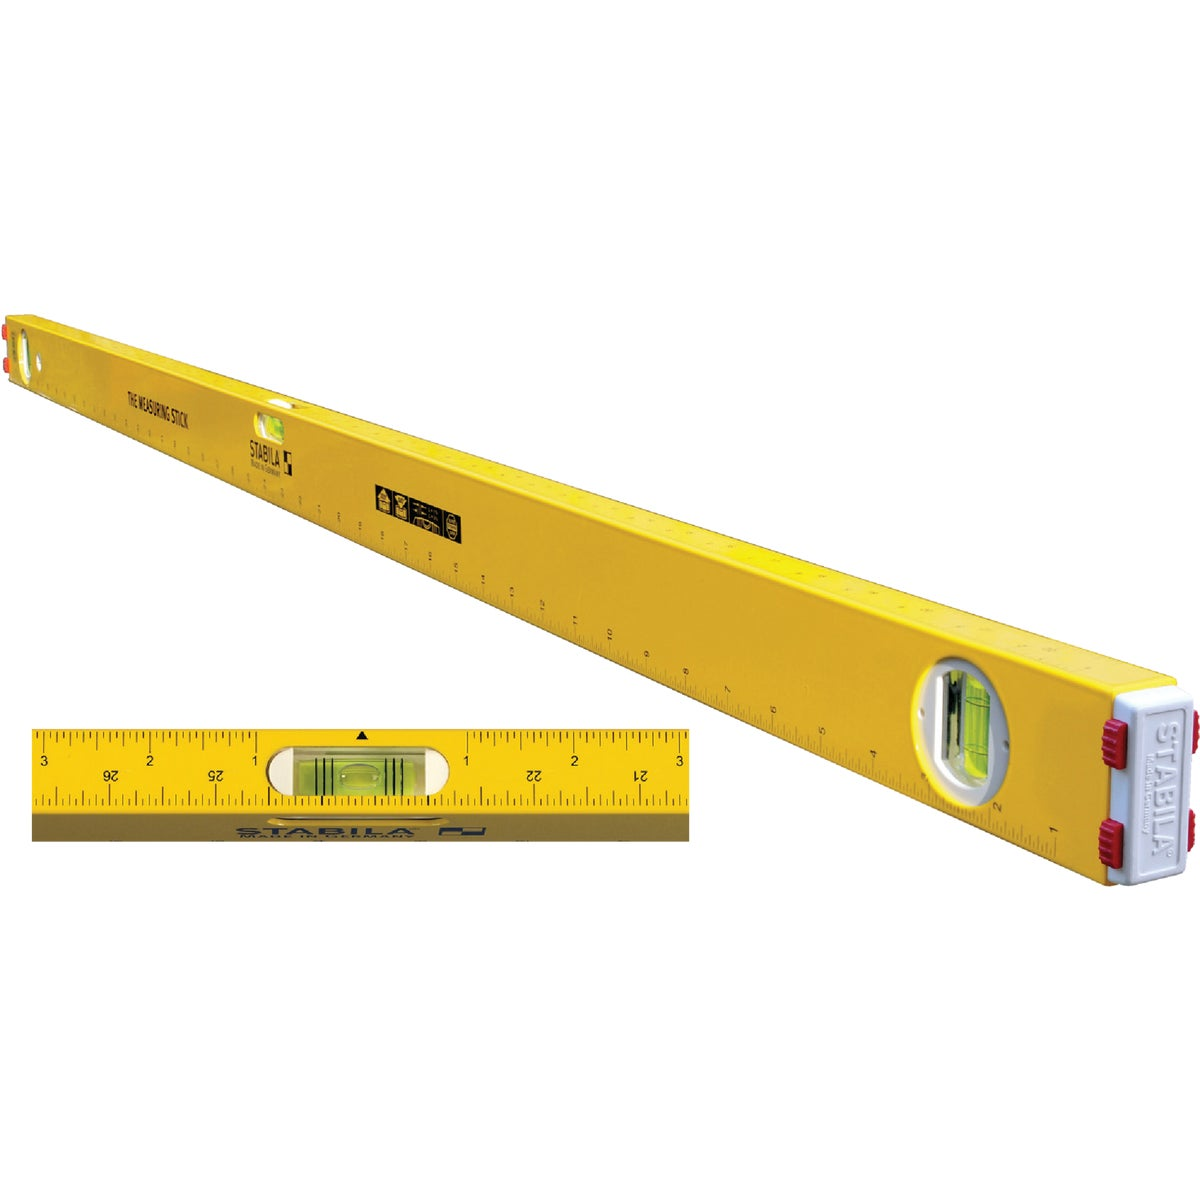 "24"" MEASURE STICK - 29124 by Stabila"